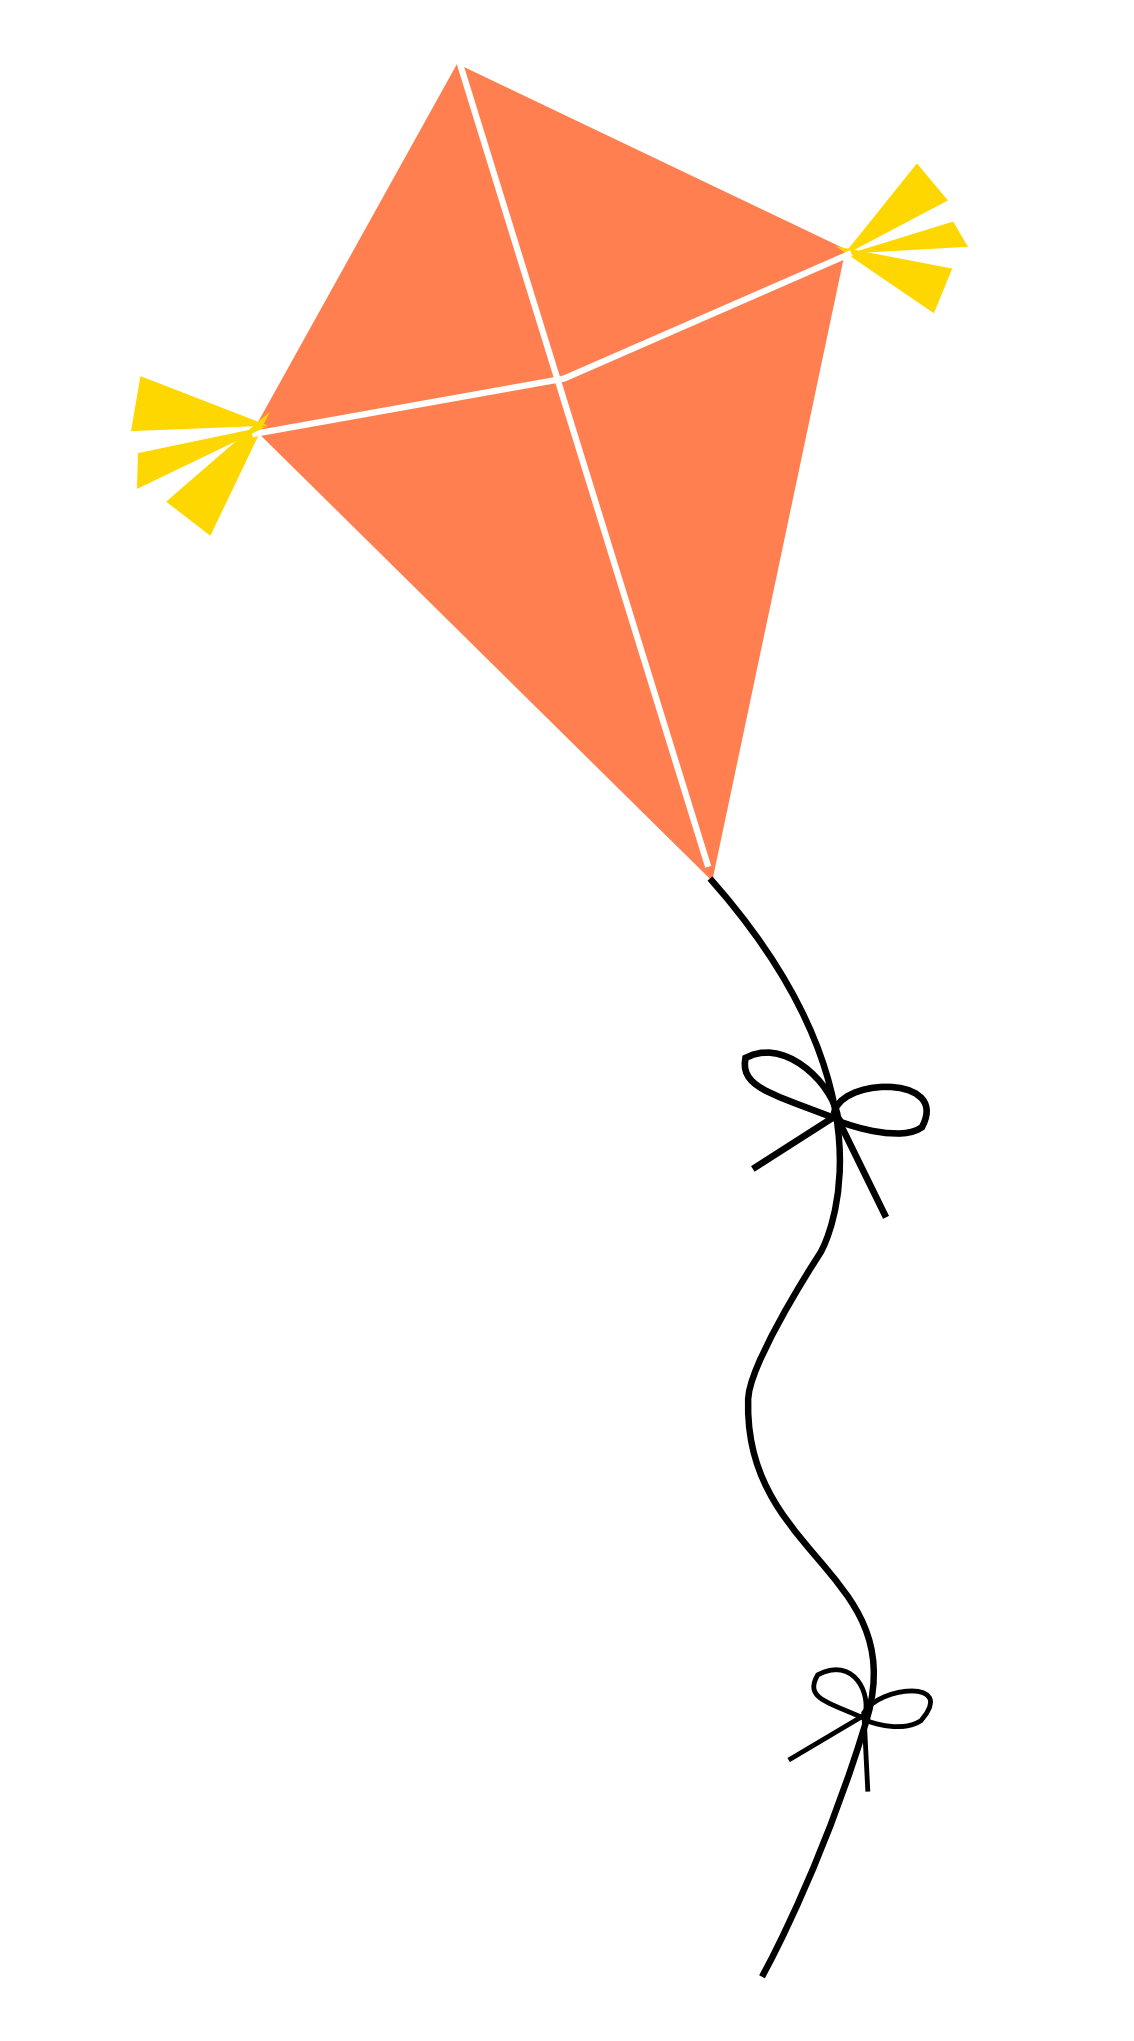 Clipart kite transparent background. Png image best stock